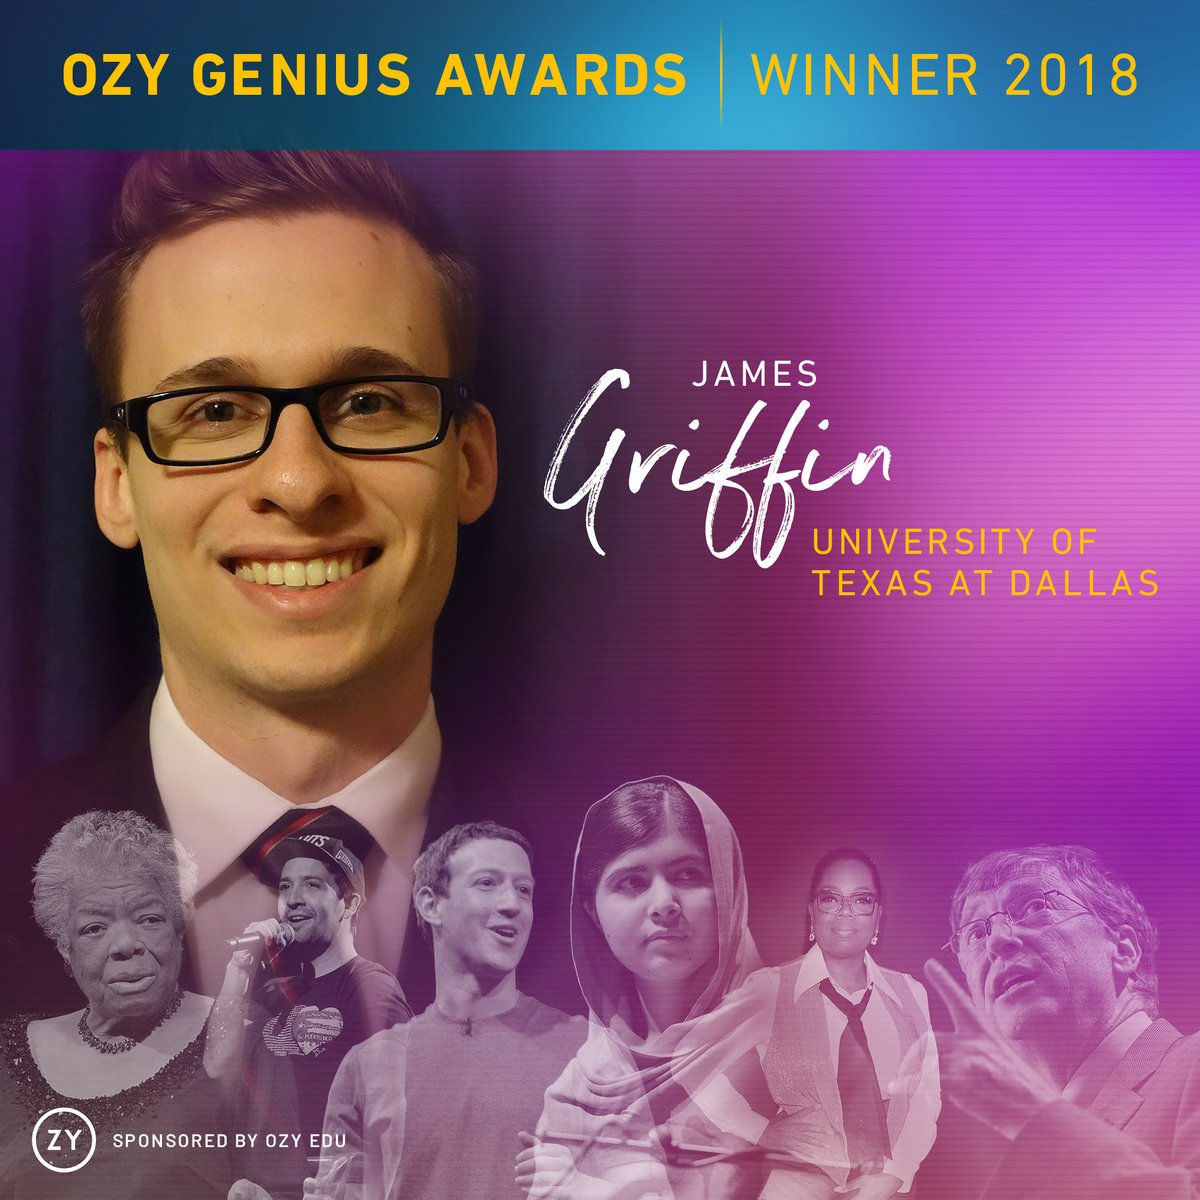 Department of computer science the university of texas at dallas computer science grad wins ozy genius award for advising app malvernweather Choice Image